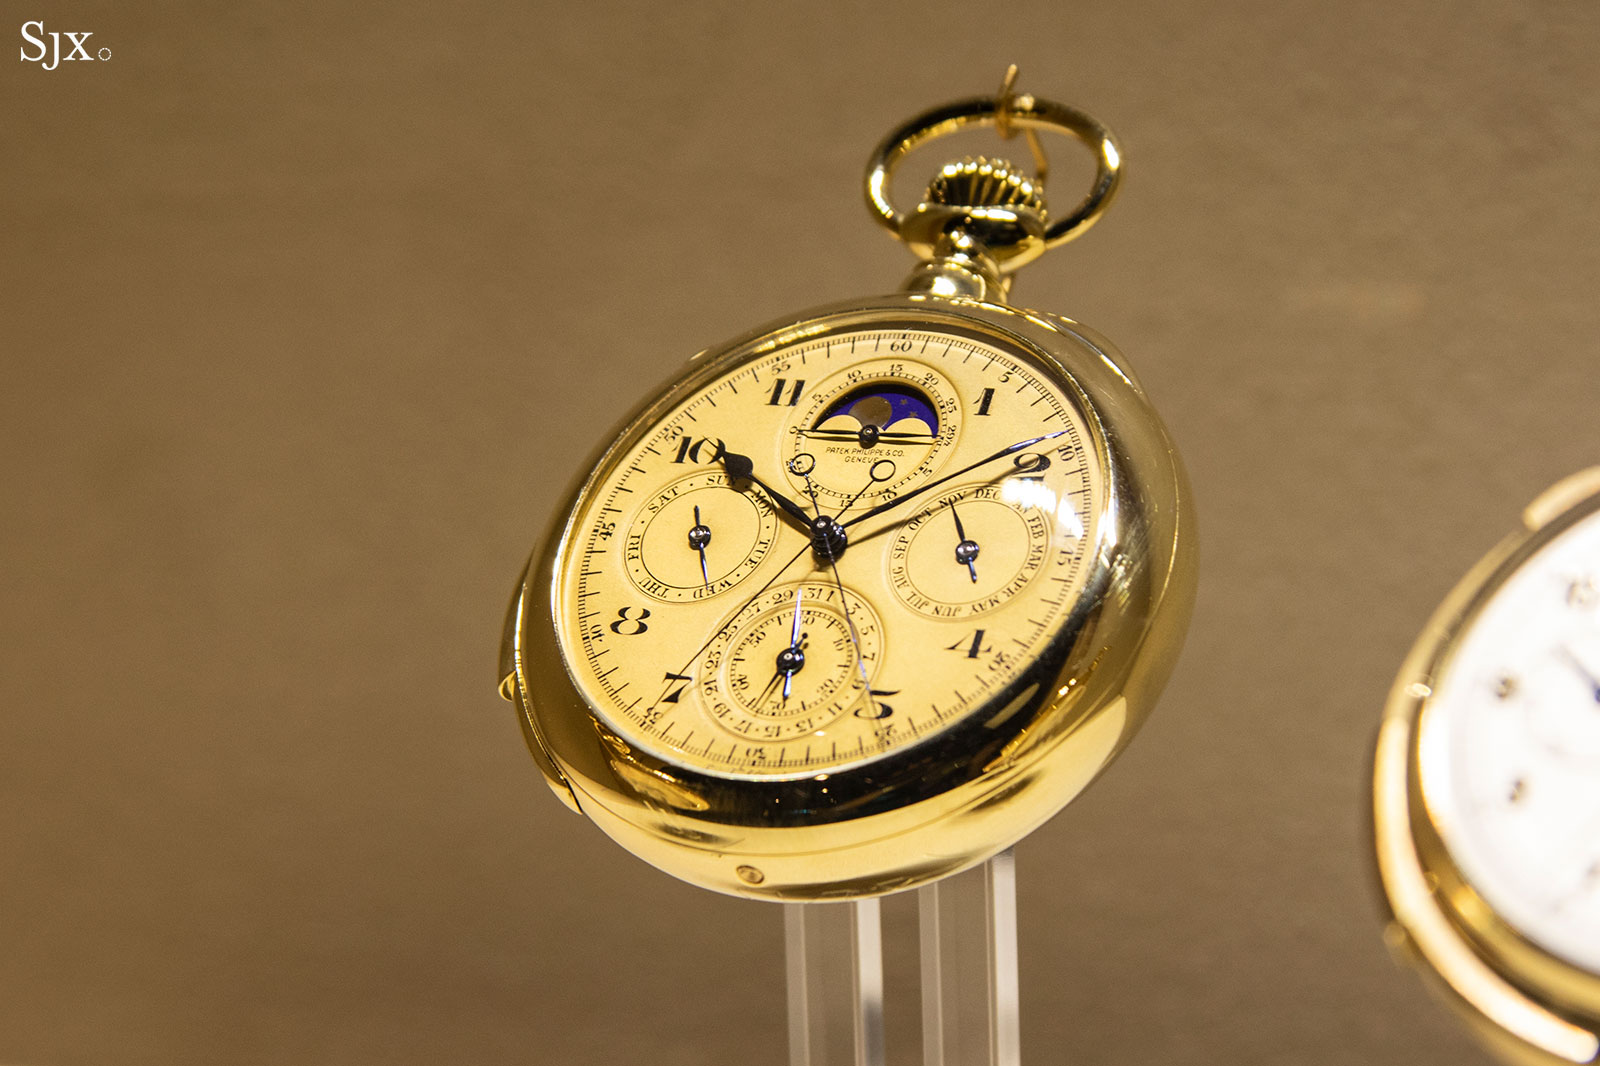 patek grand exhibition singapore 2019 grand comp pocket watch